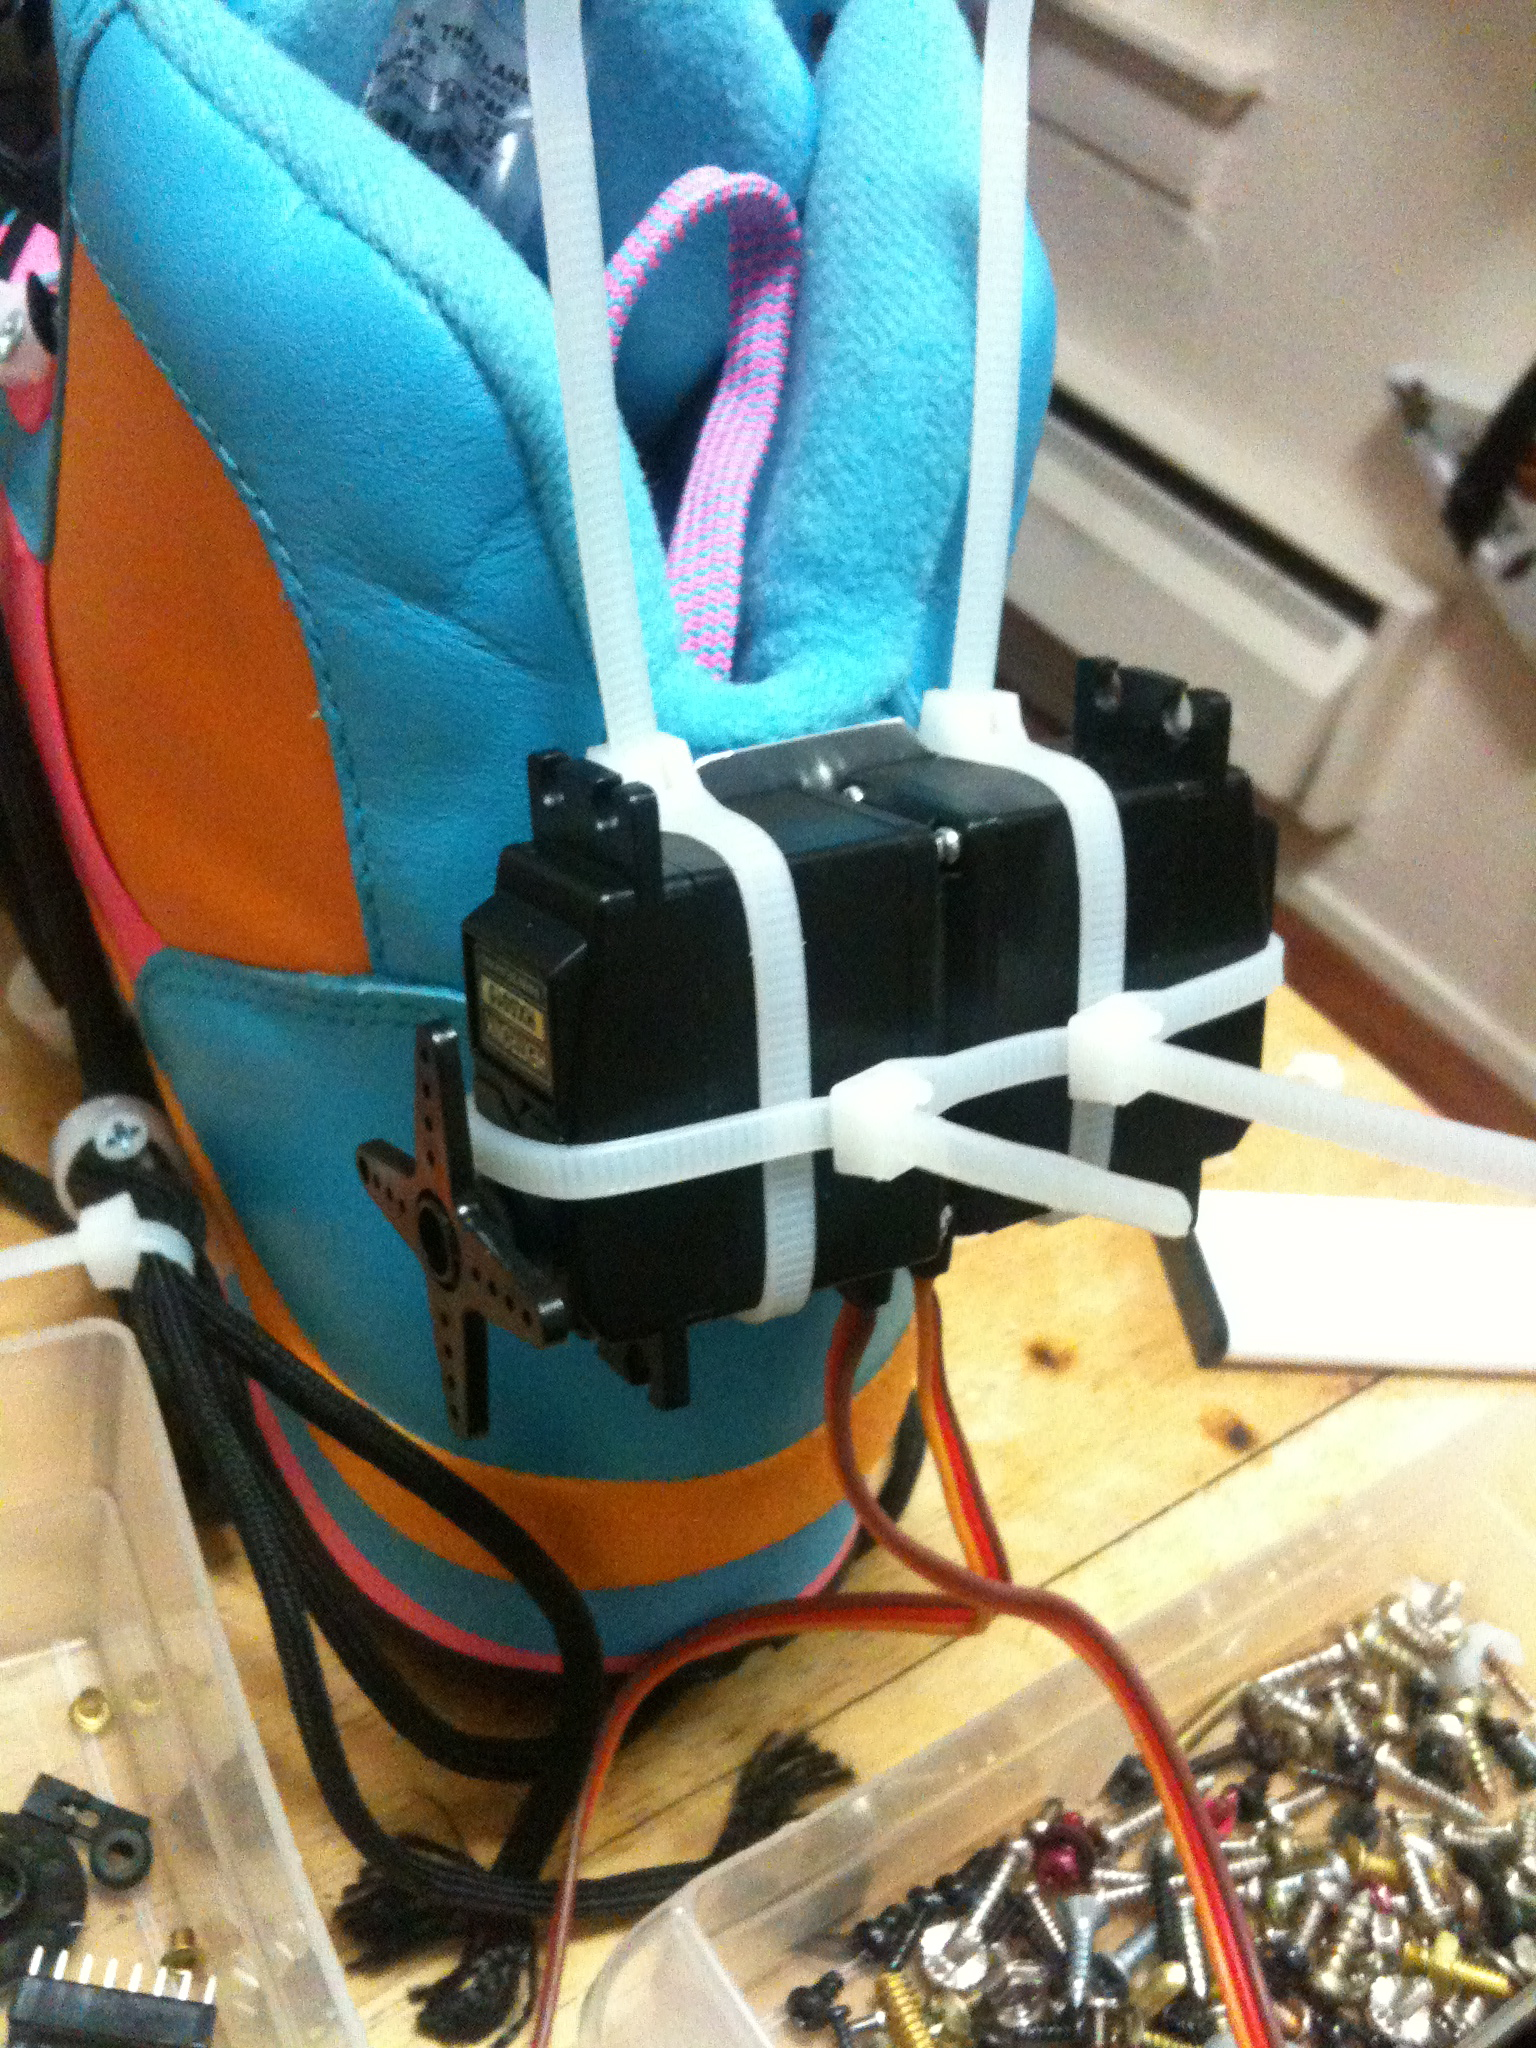 Picture of Mount the Servos, Battery, and Arduino